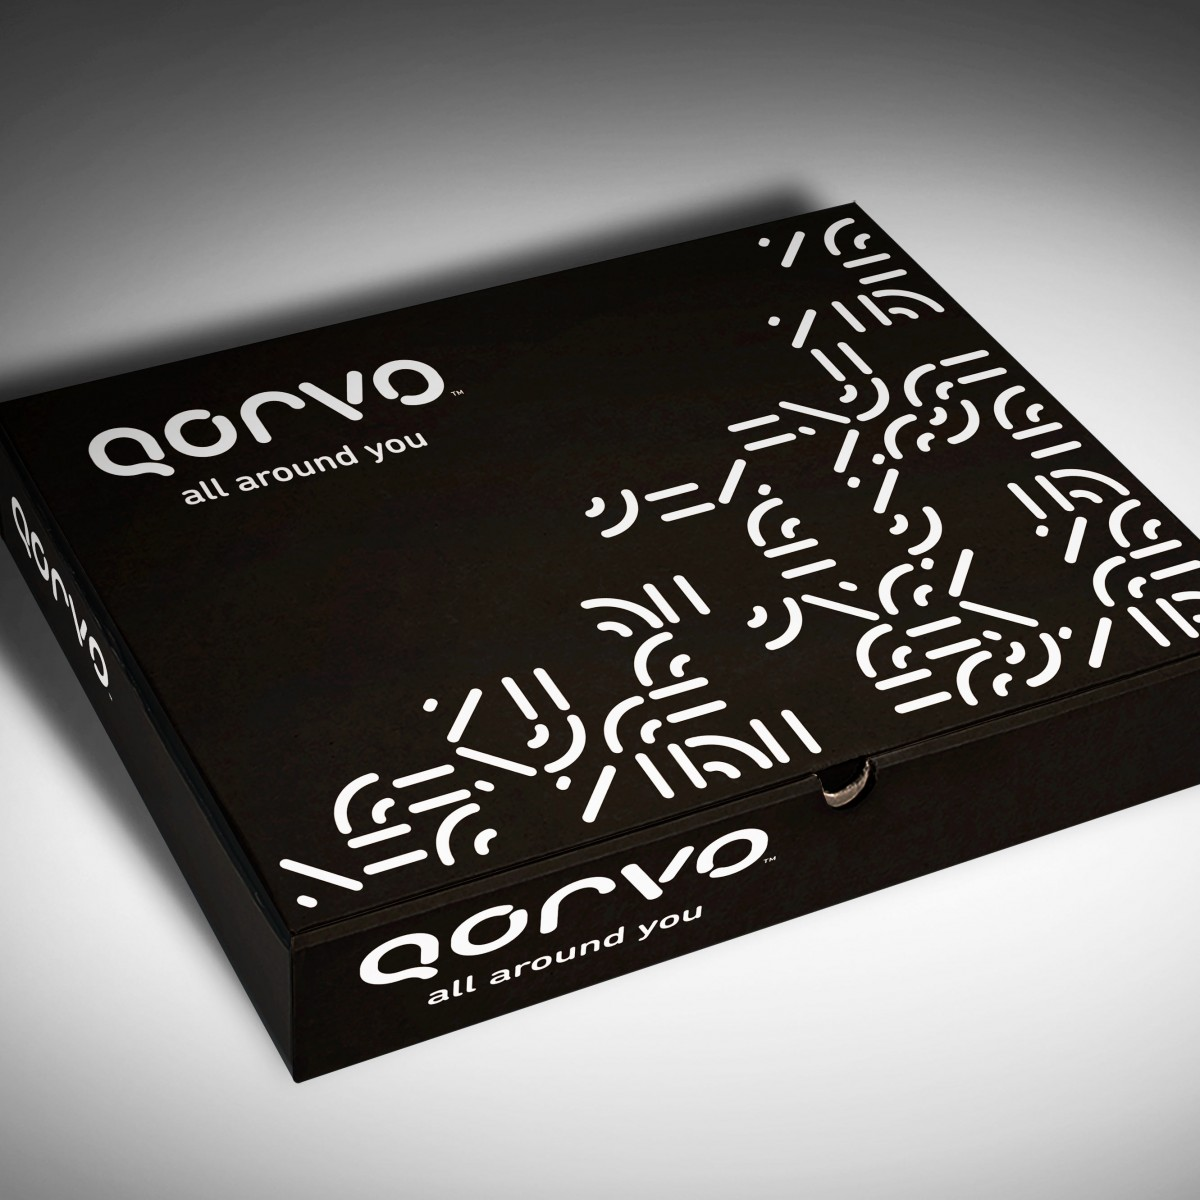 Qorvo sample test kit box